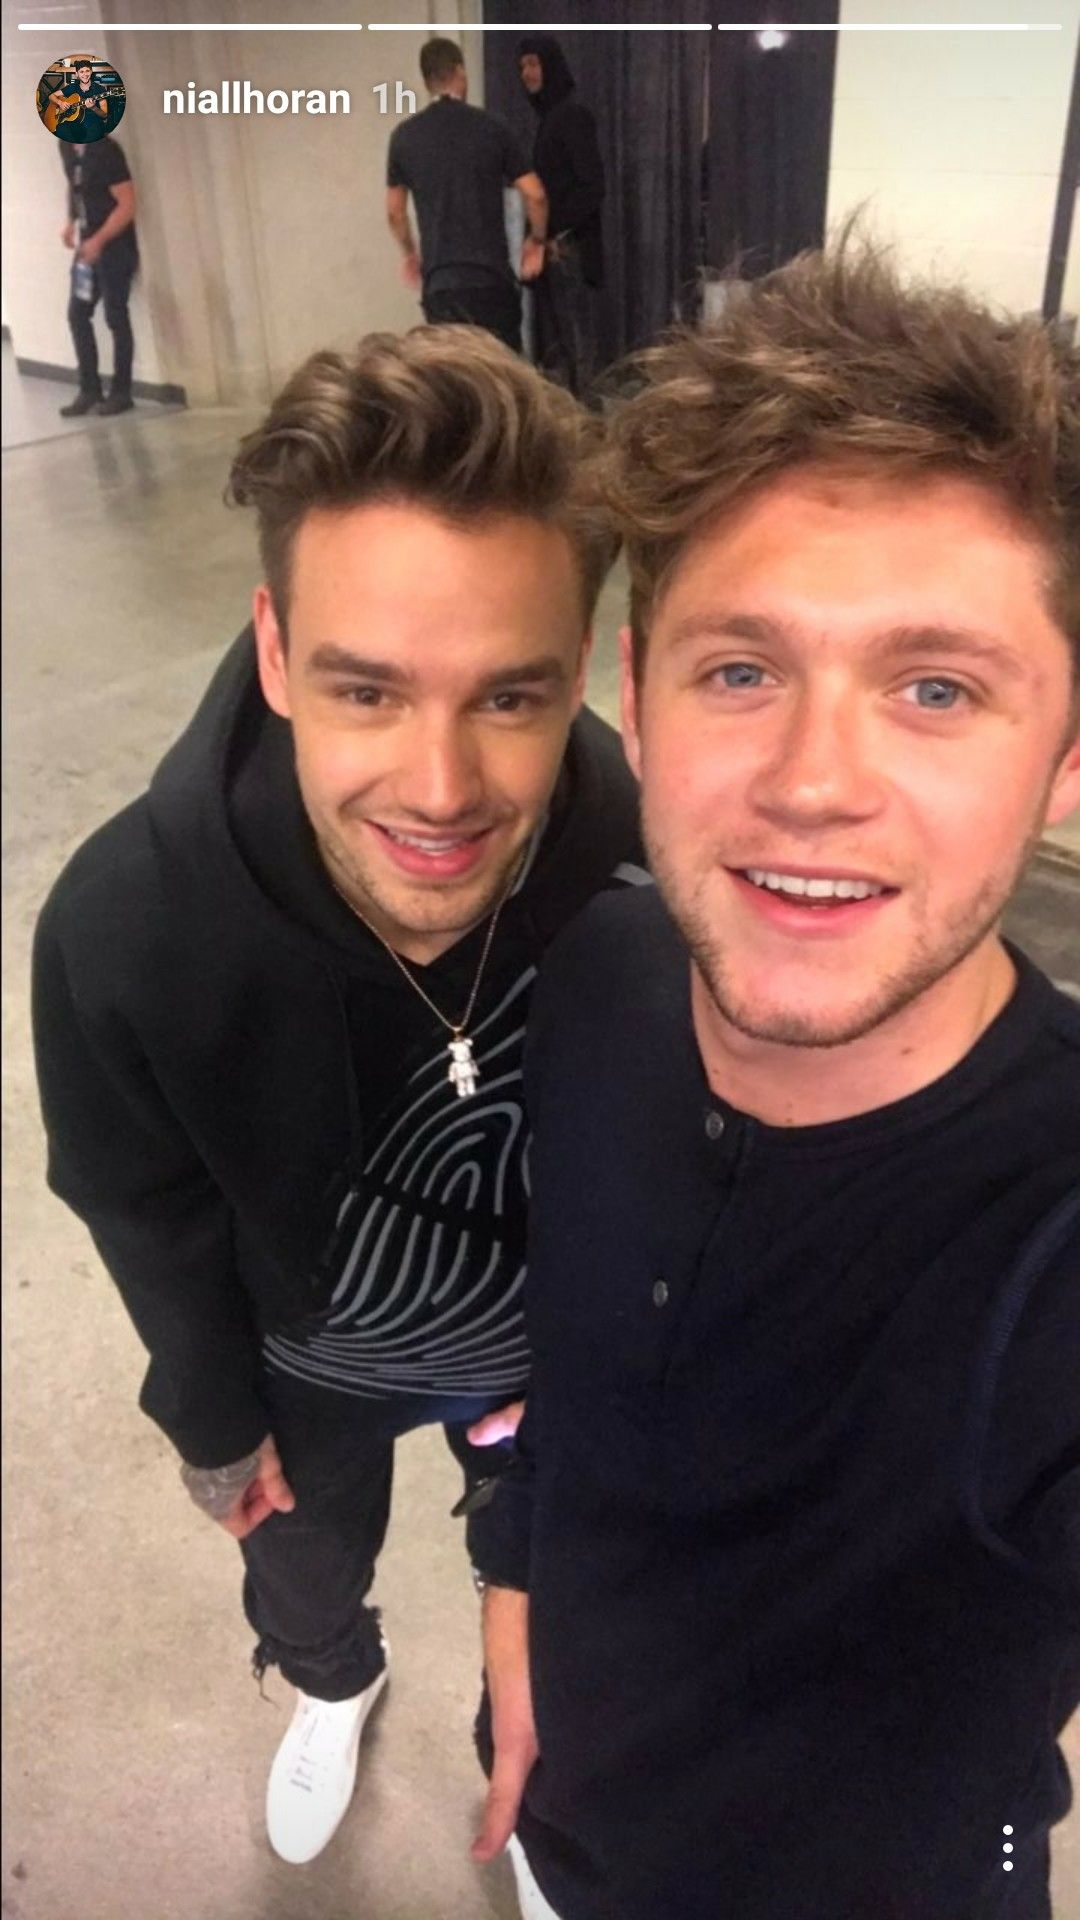 Niall and Liam. Niall's Instagram story. This makes my